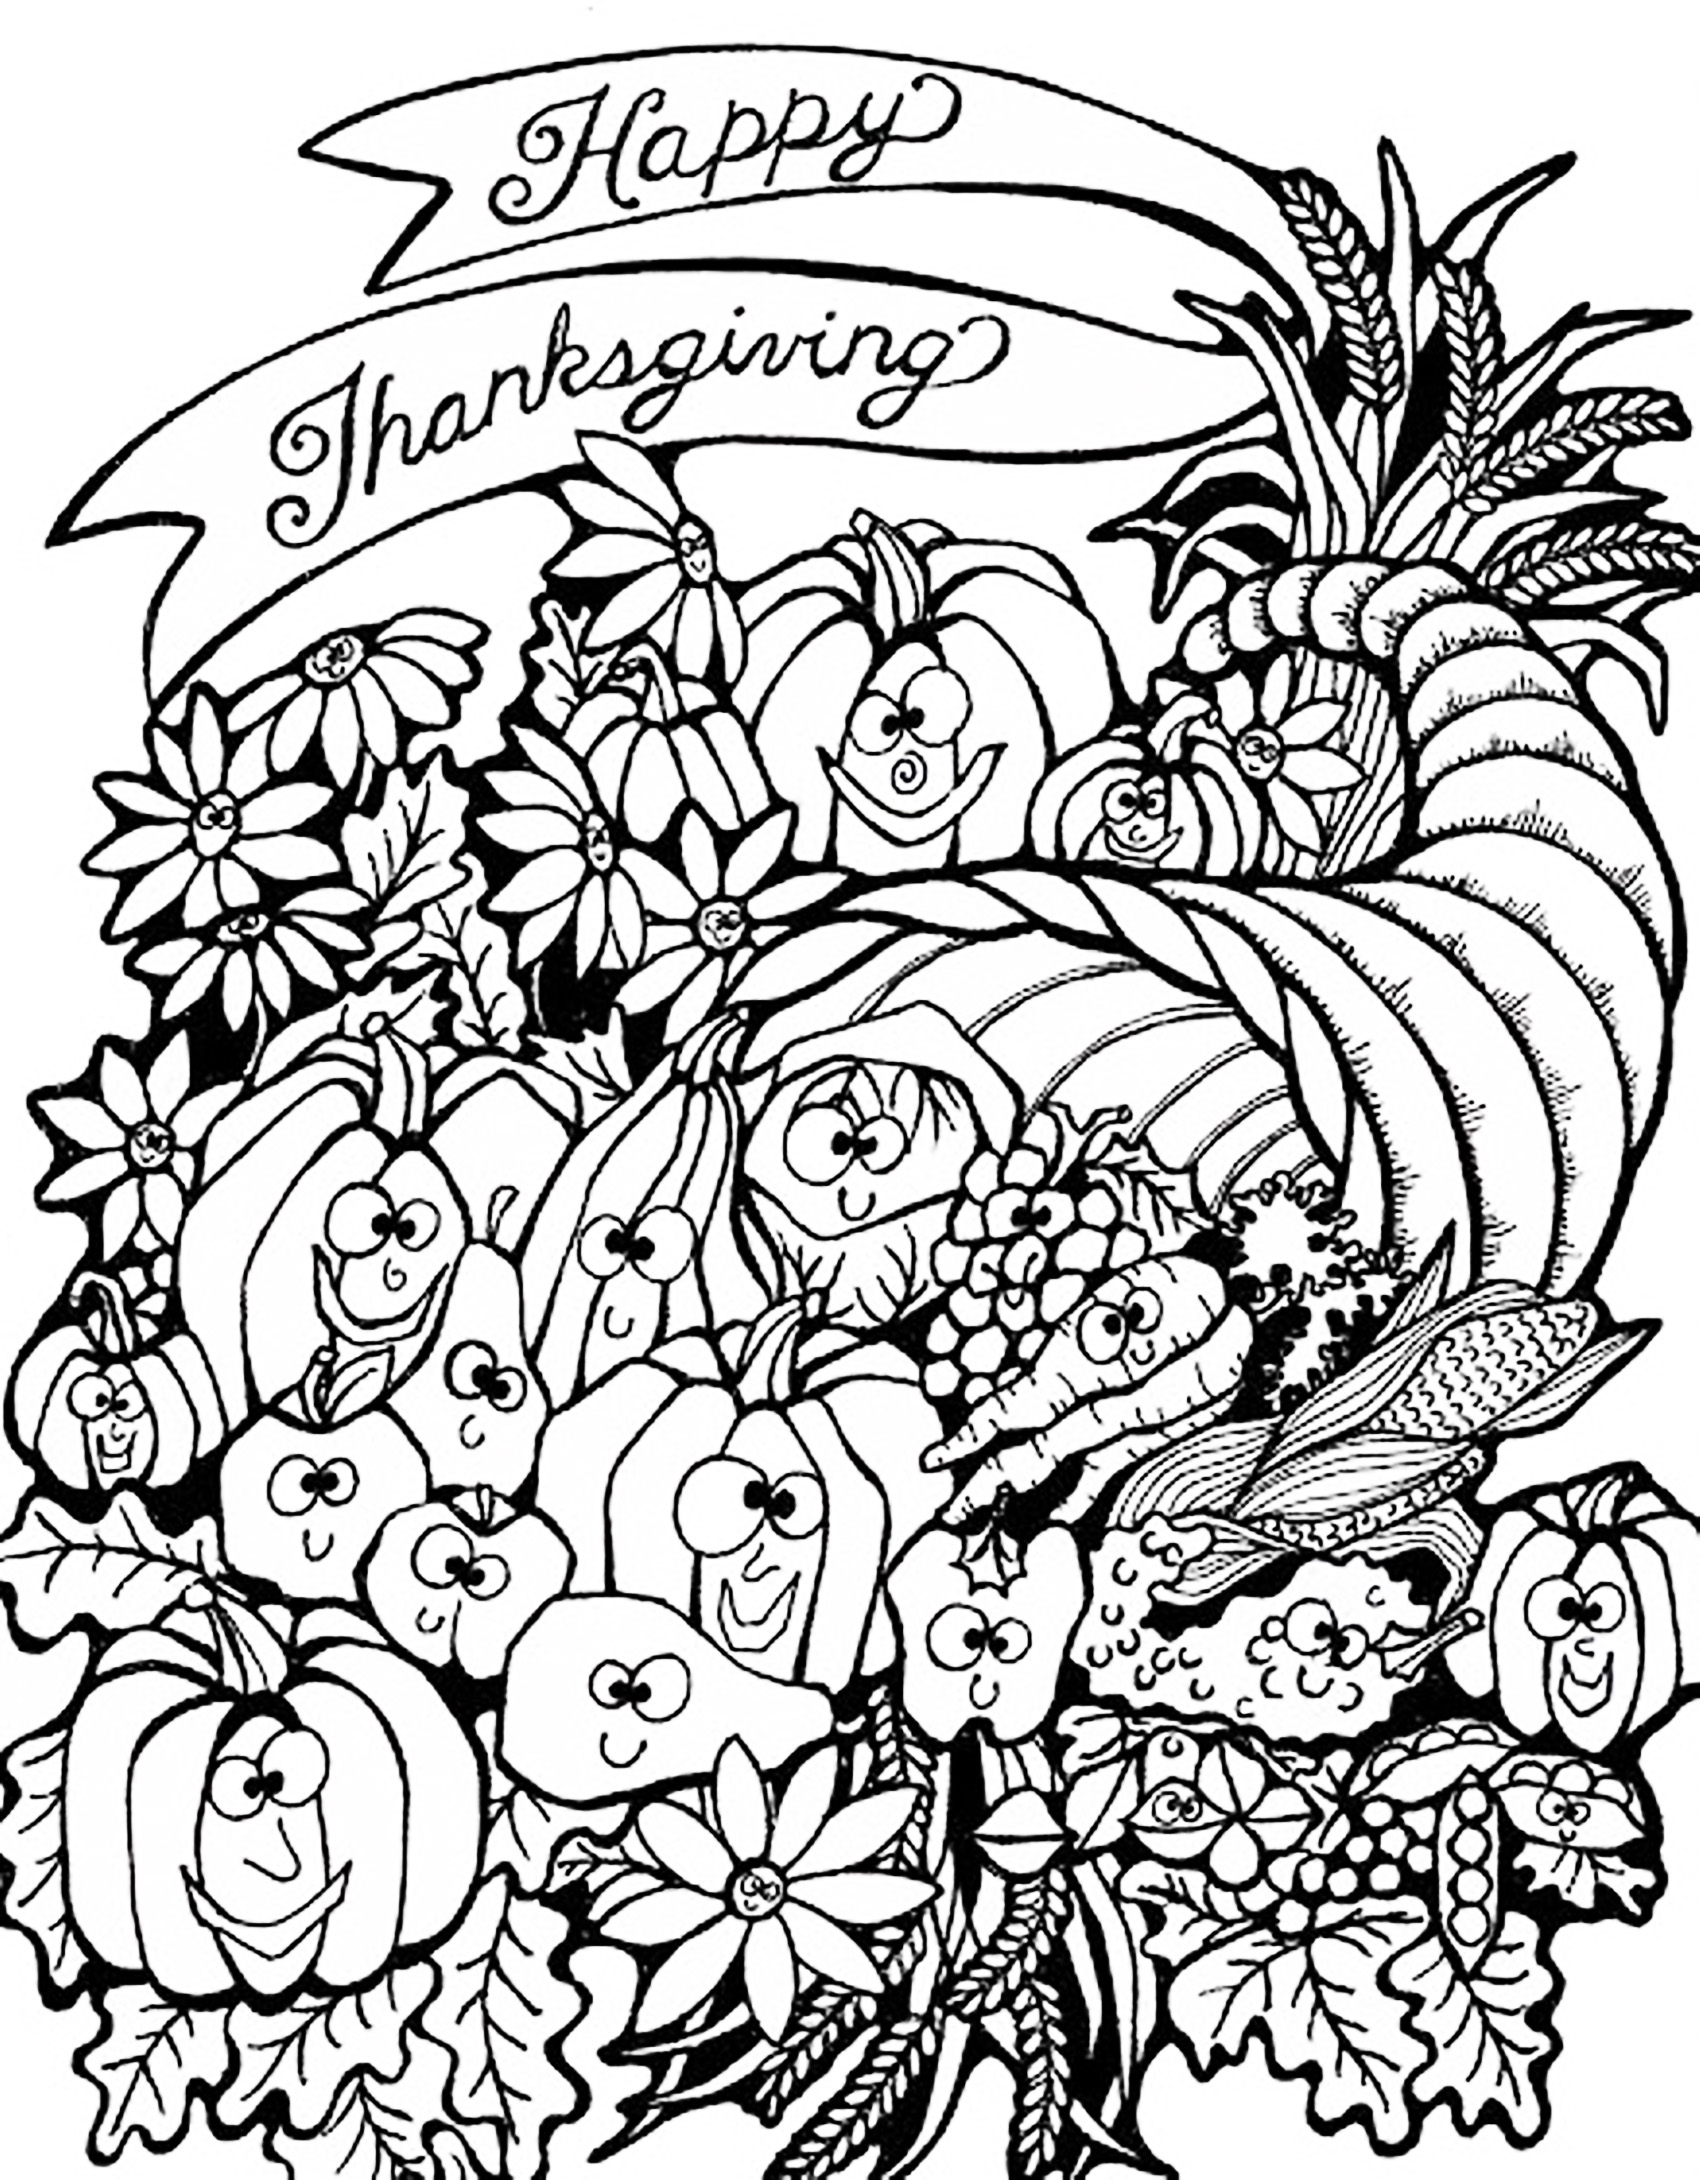 Harvest Coloring Pages For Adults : harvest, coloring, pages, adults, Thanksgiving, Harvest, Cornucopia, Adult, Coloring, Pages